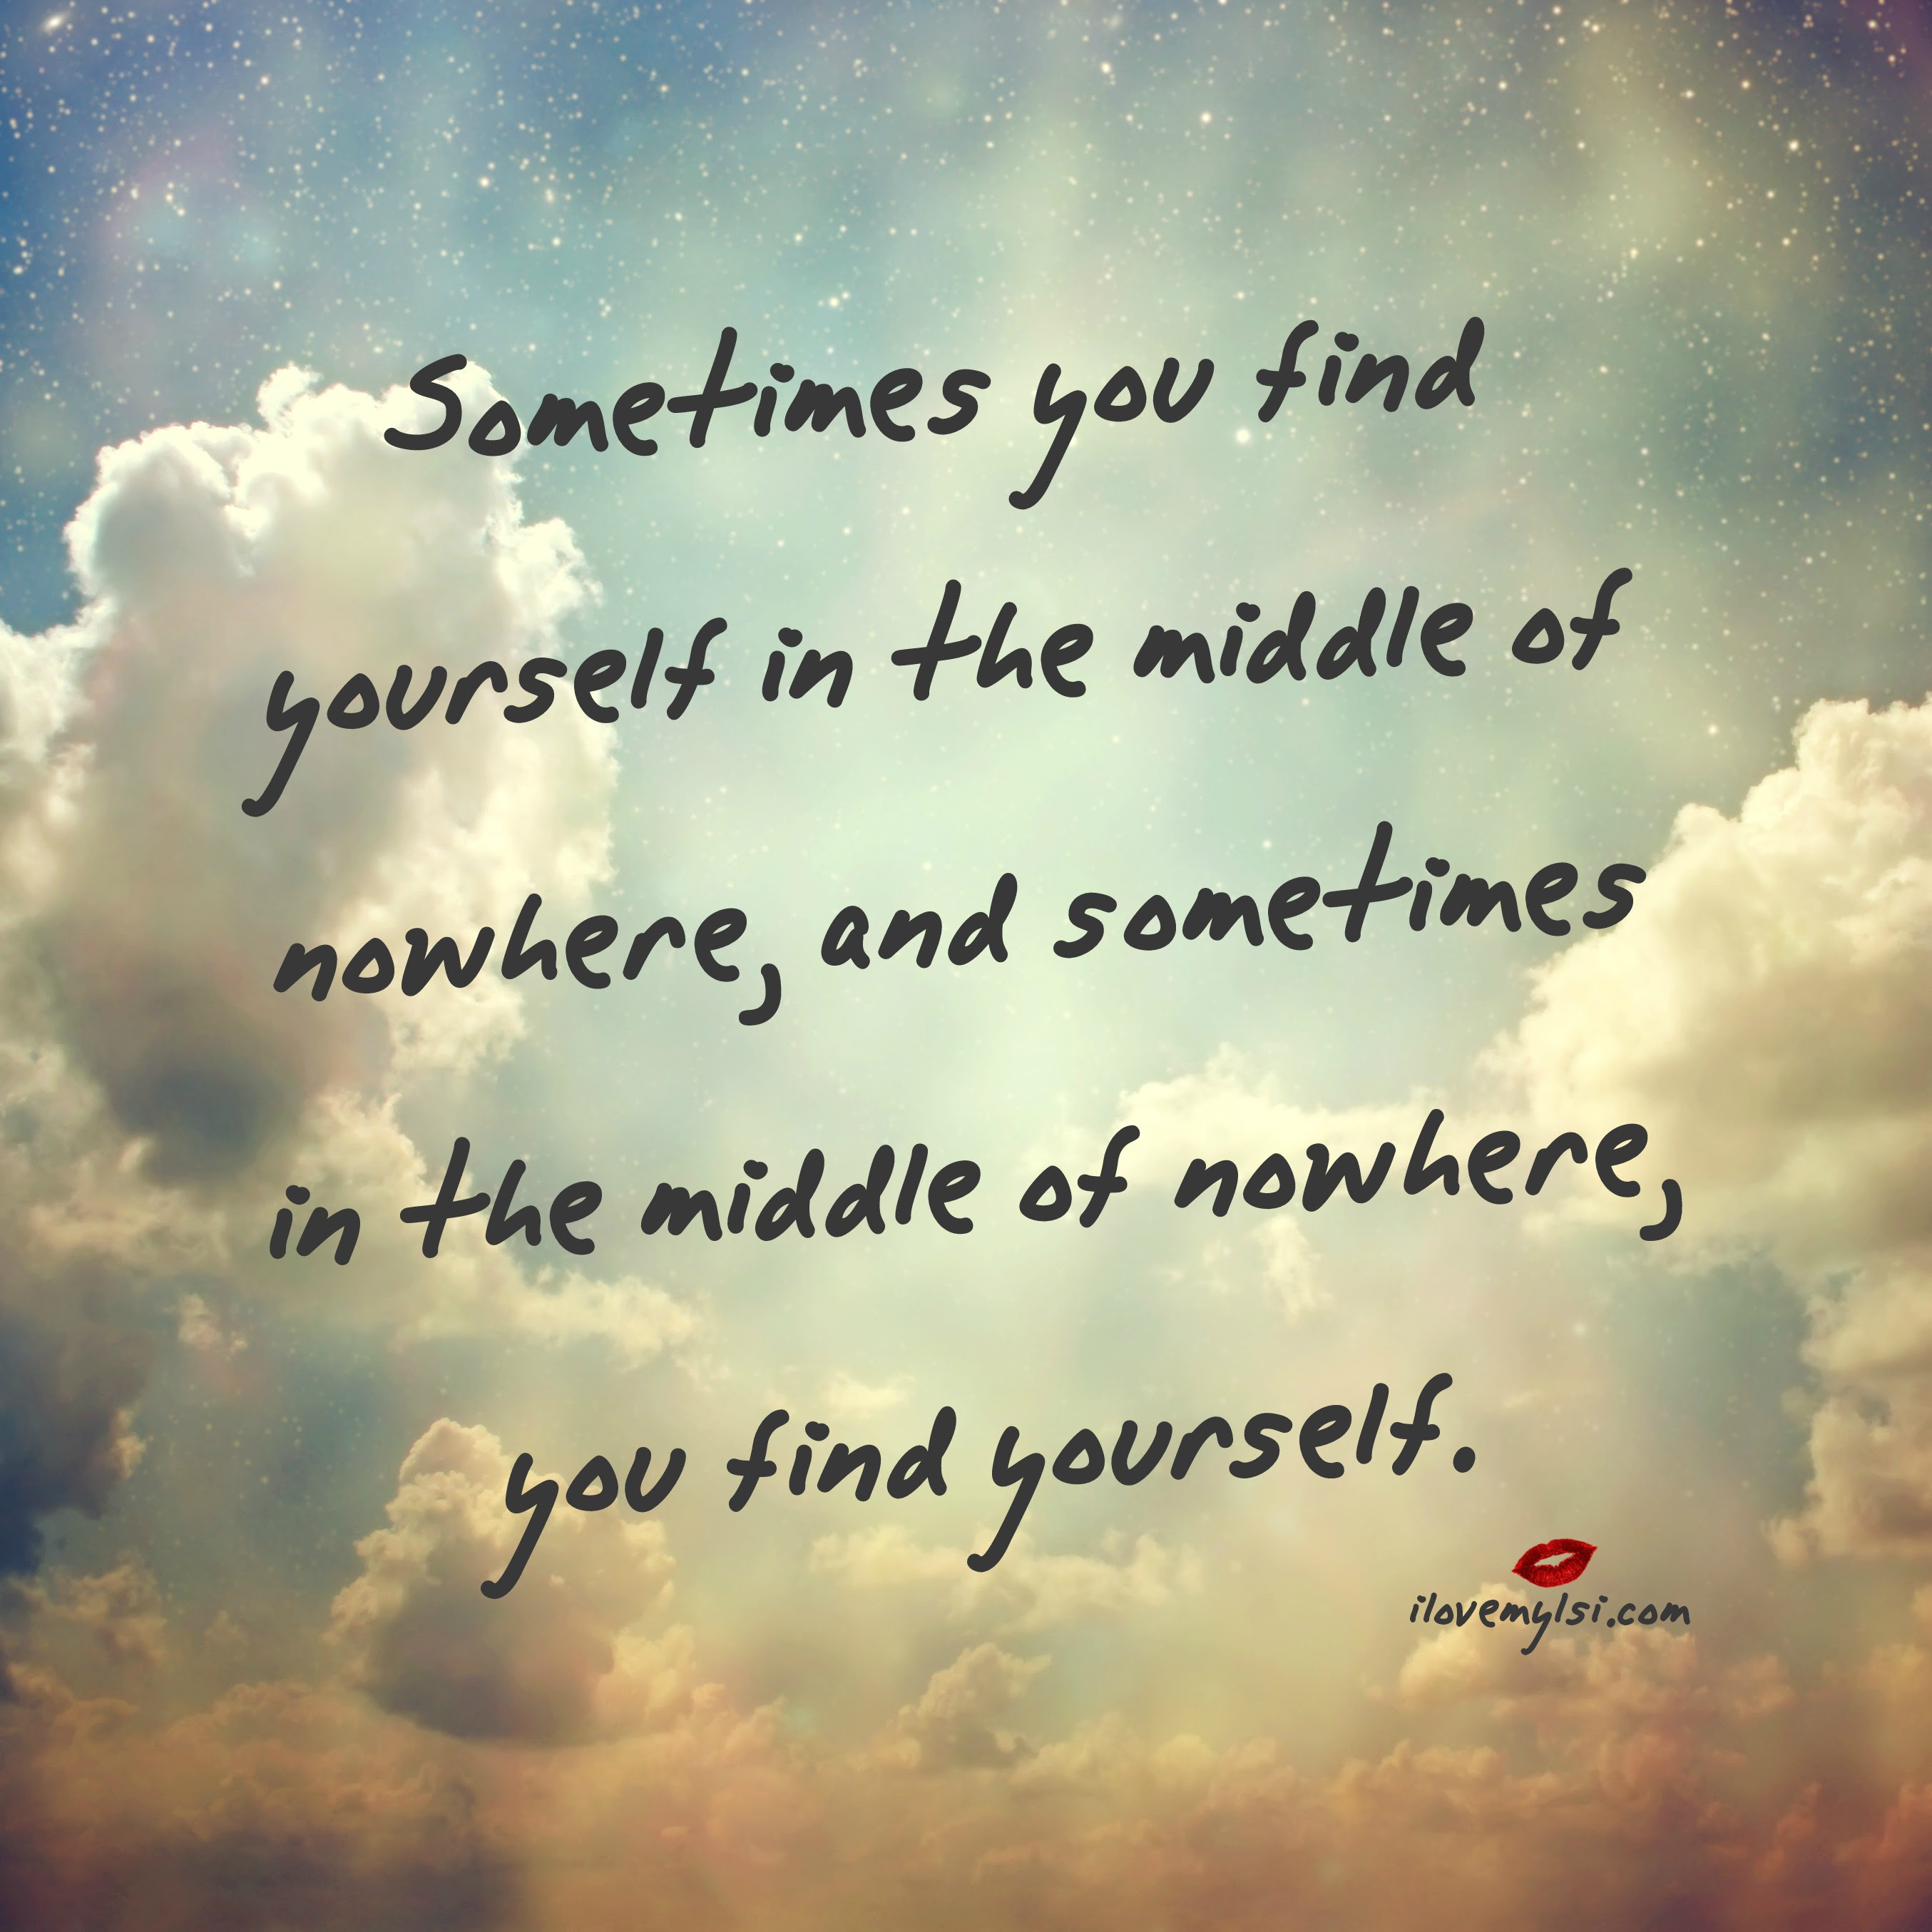 Quotes About Finding Yourself. QuotesGram